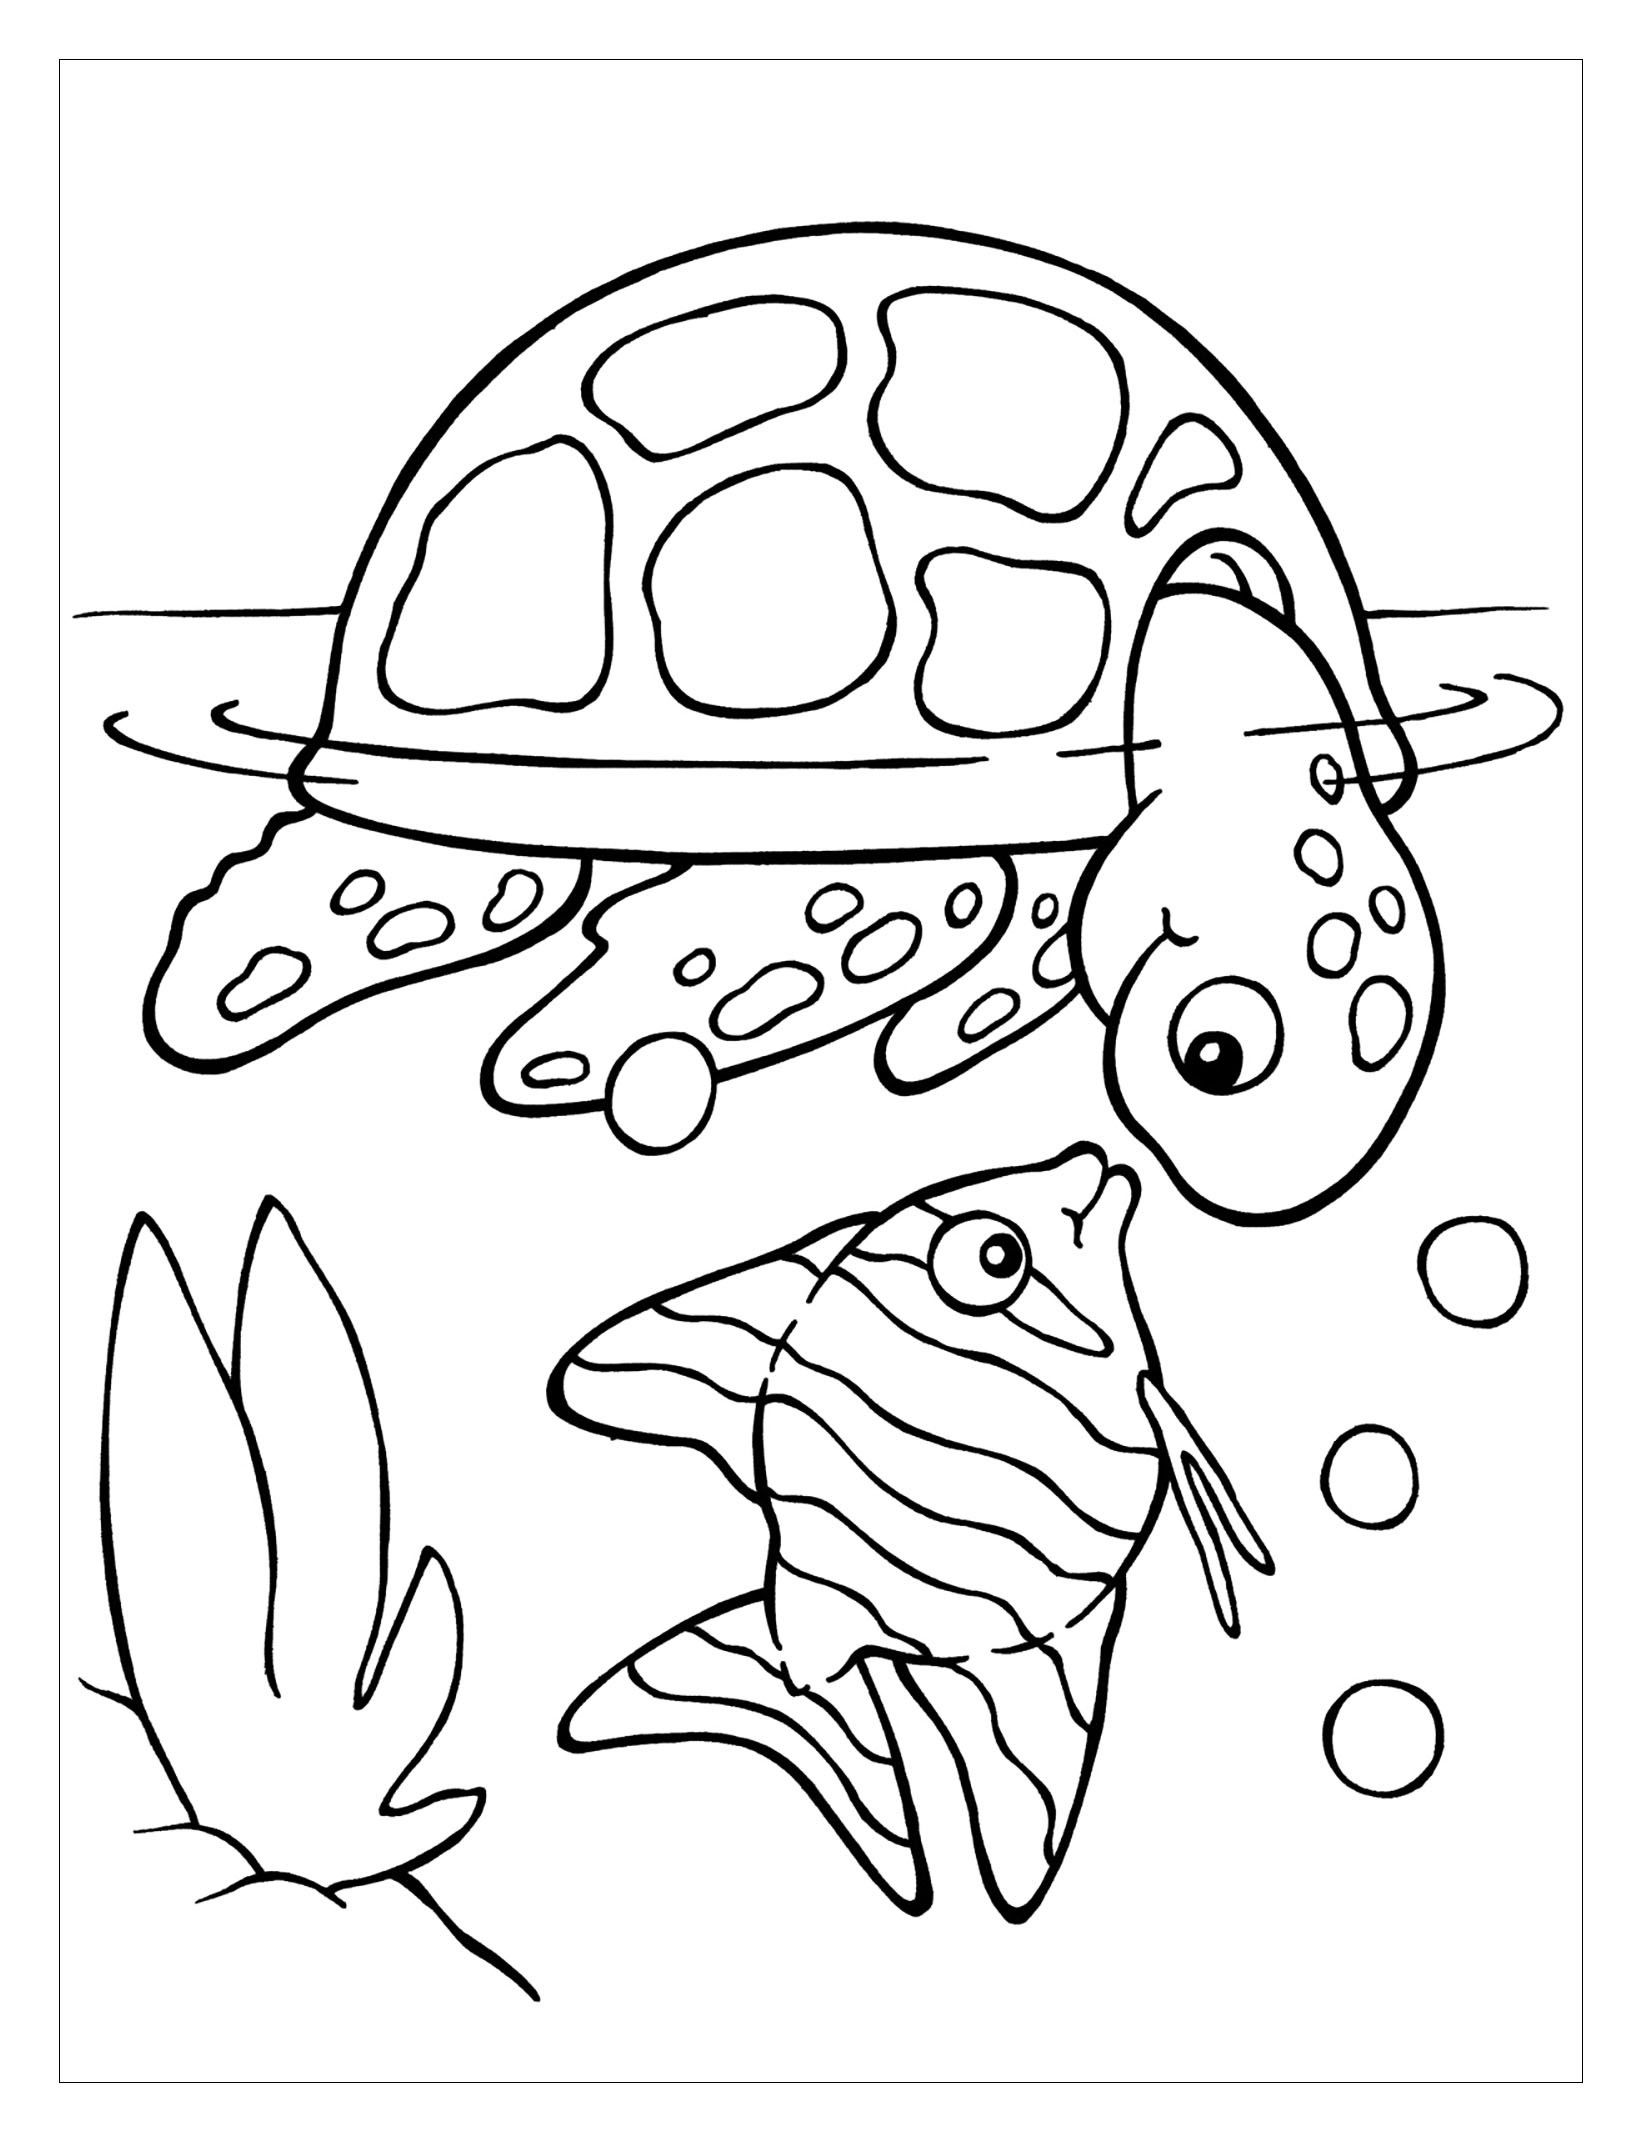 painted turtle coloring page free coloring page painted turtle coloring page page turtle painted coloring